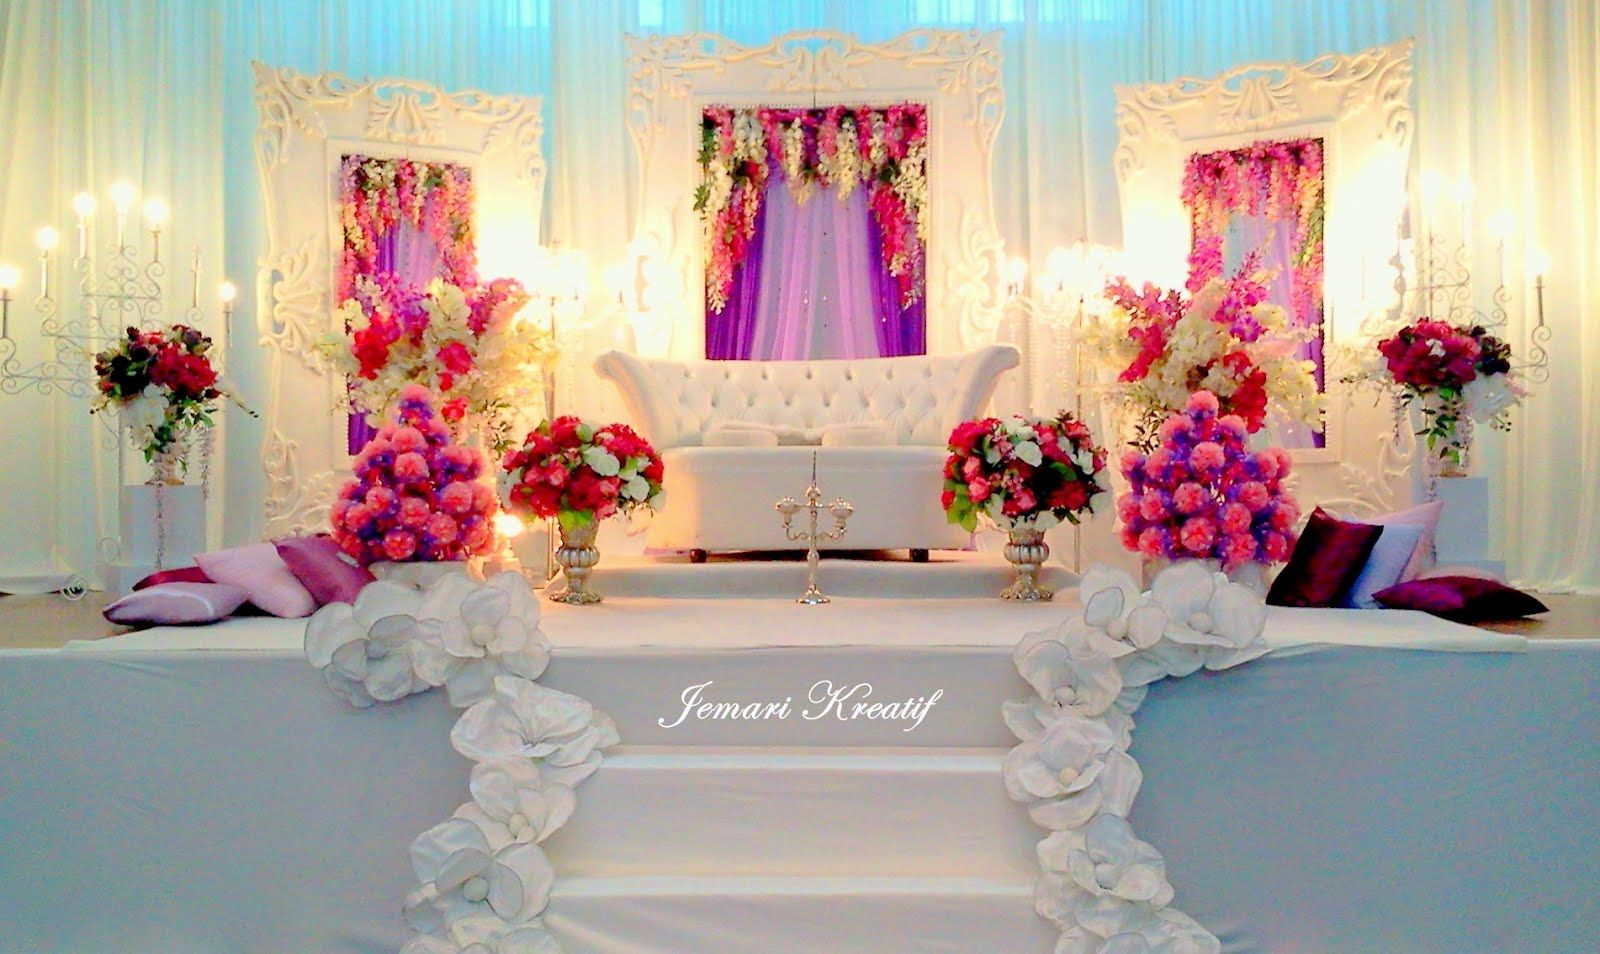 Wedding stage wedding dcor pinterest decorao de salo wedding stage junglespirit Choice Image